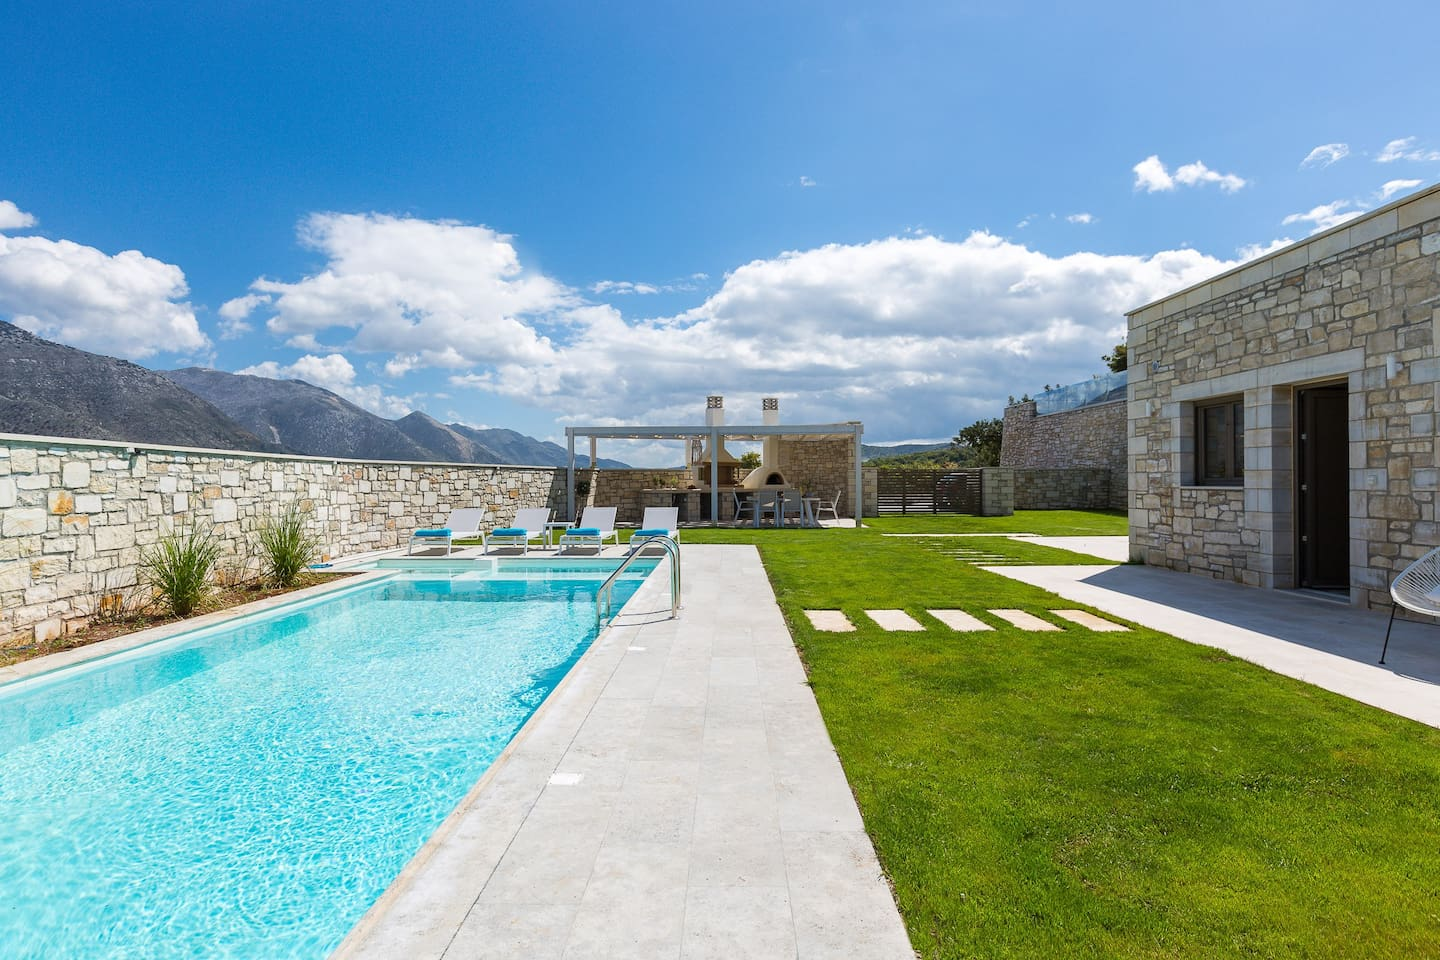 Impressive natural beauty and impeccable countryside views meet the luxurious Thalmargia Villa I,  nestled in the picturesque, historical village of Episkopi.